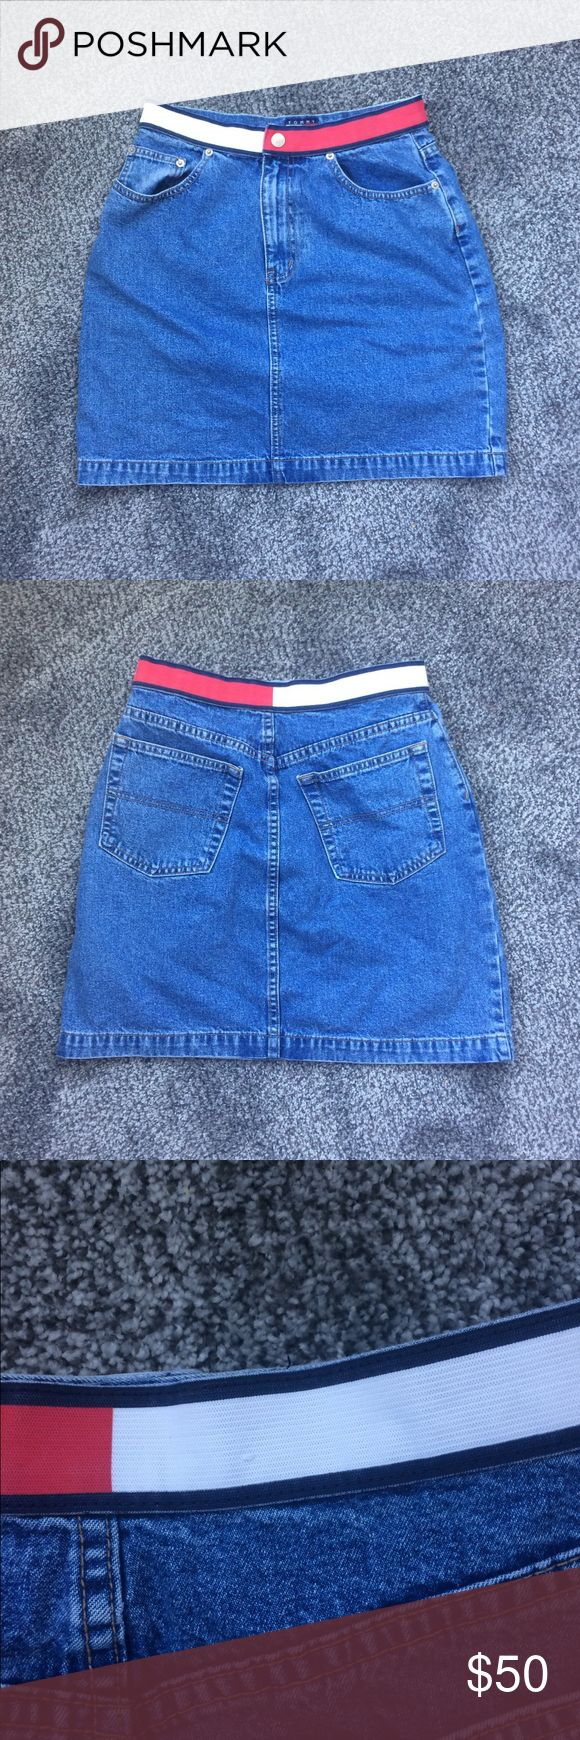 Vintage 90's Tommy Hilfiger Denim Skirt Some loose threads as pictured, but in great vintage condition. Labeled a size 8 but fits more like a 6. 28 inch waist. 19 inch length. Will accept a reasonable offer! Tommy Hilfiger Skirts Mini